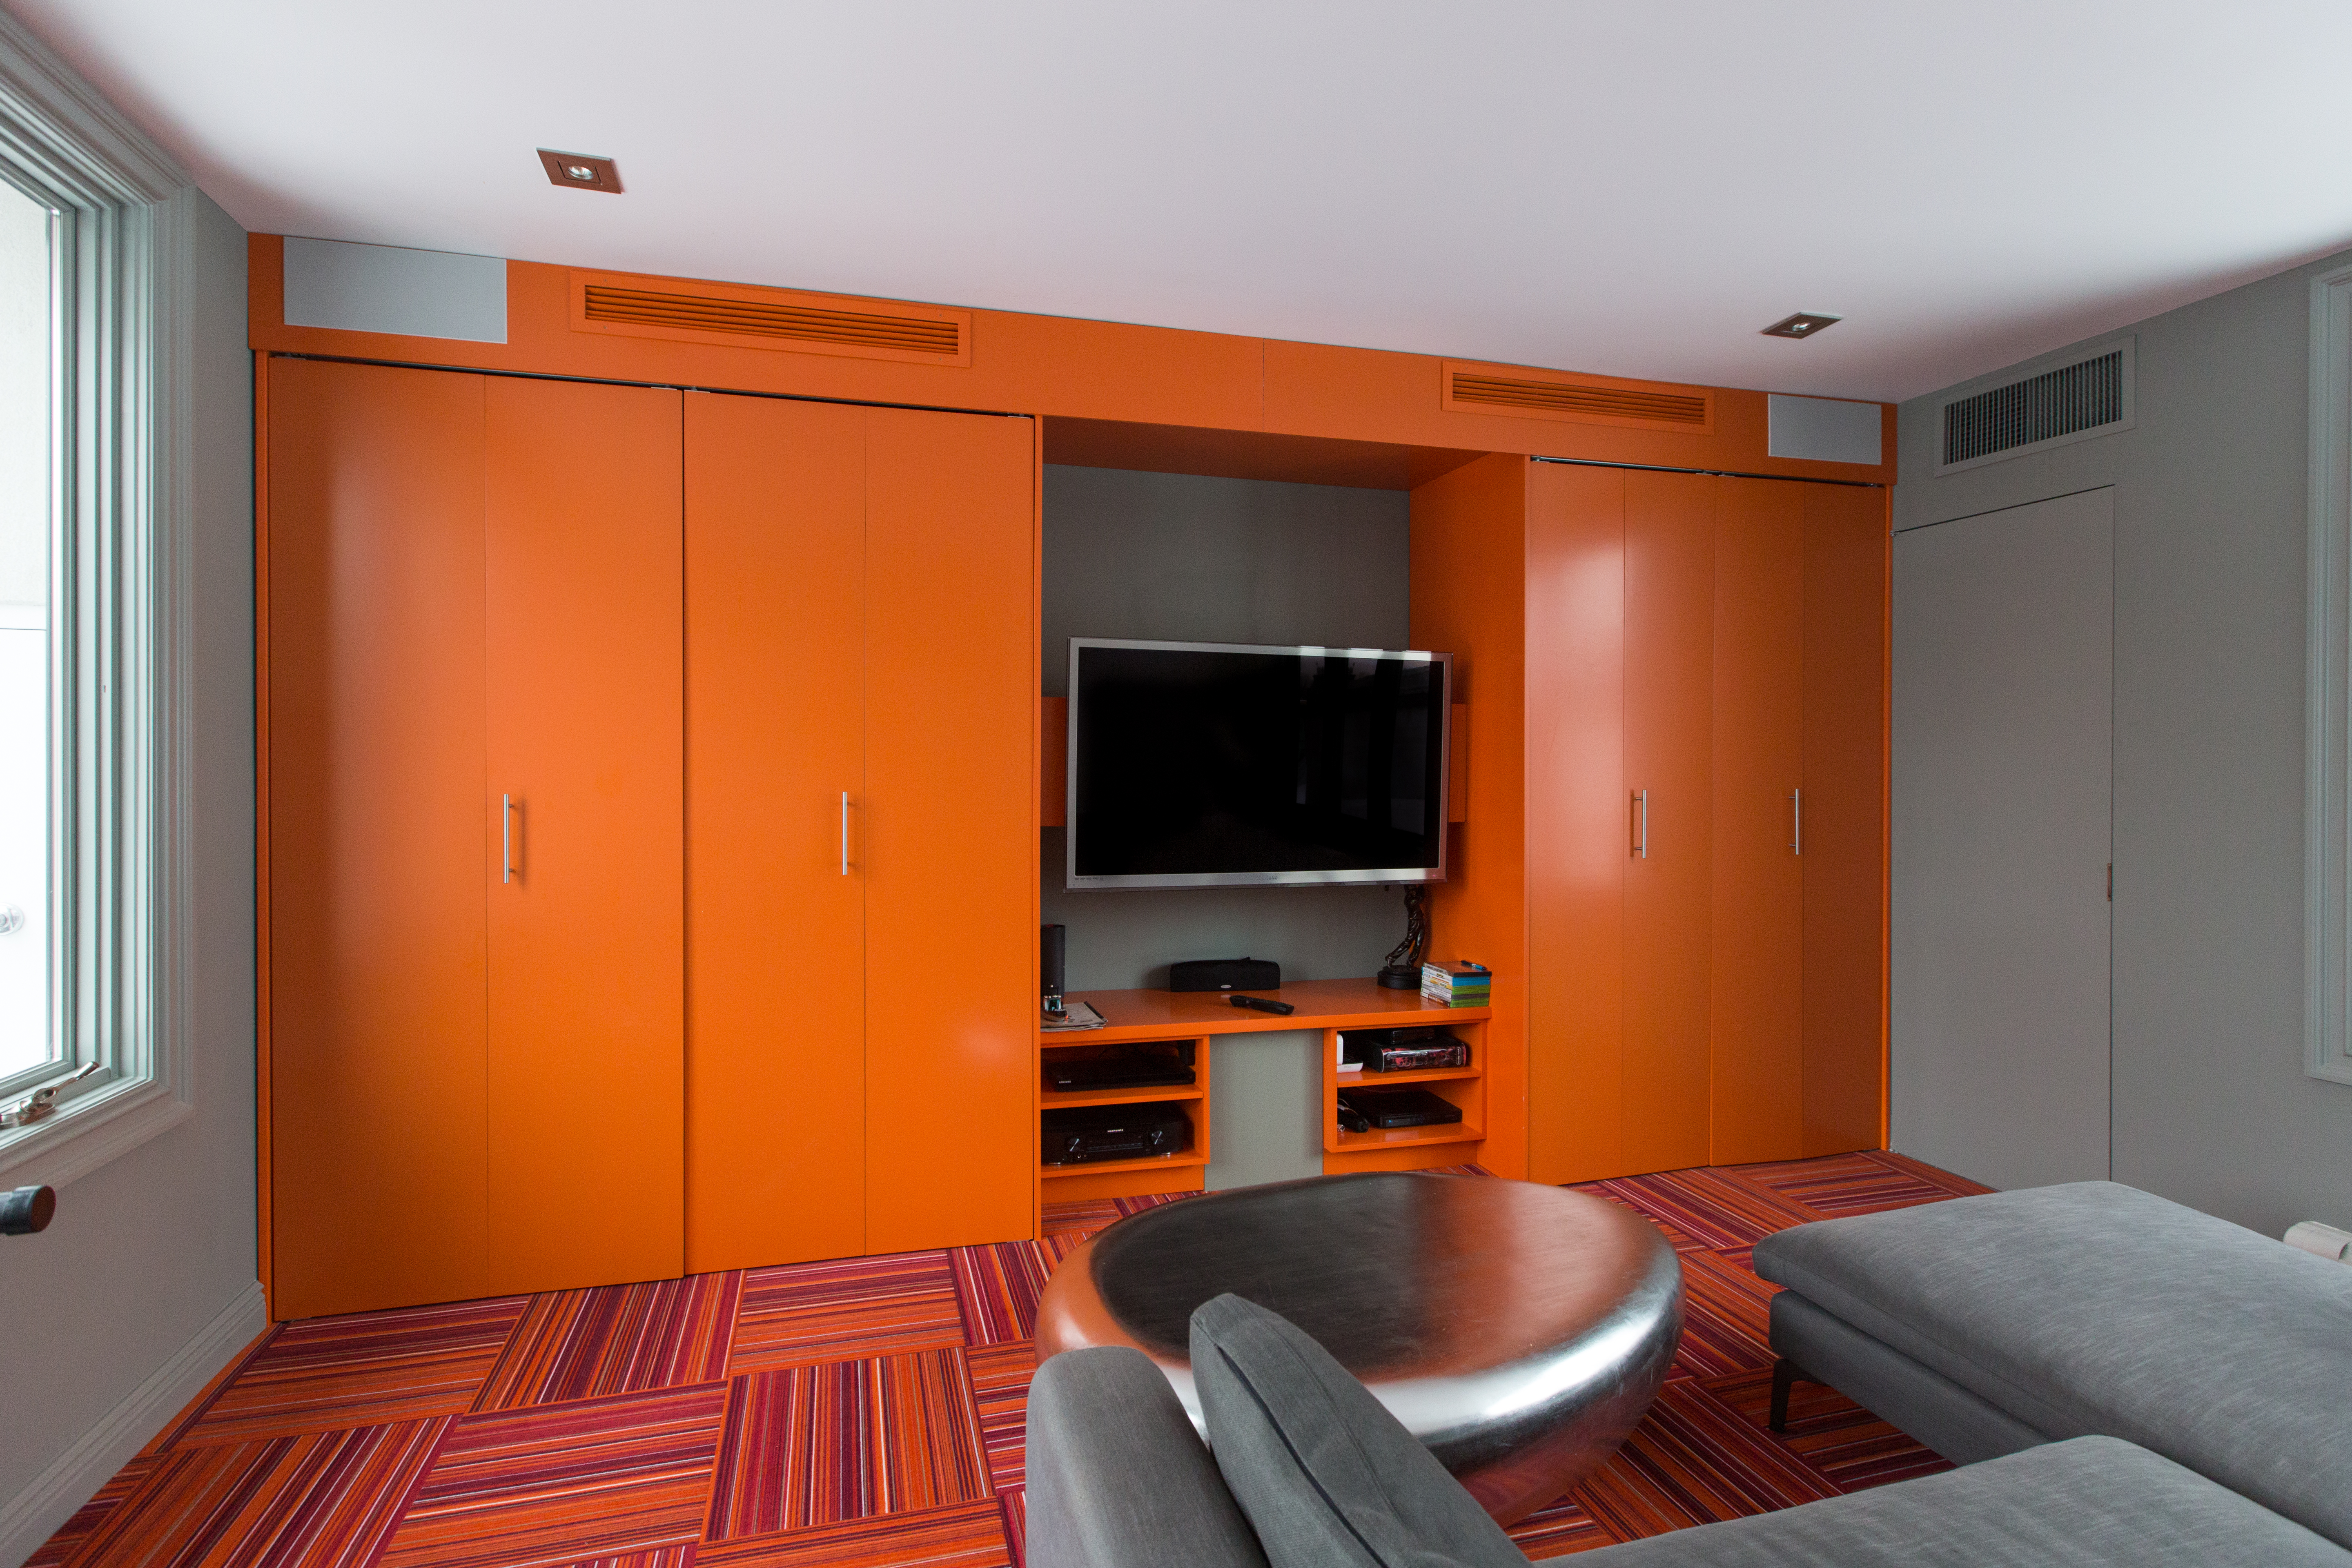 At the top left and right of the cabinet you can see the two high-end Polk 265-LS in-wall speakers we installed for the audio system